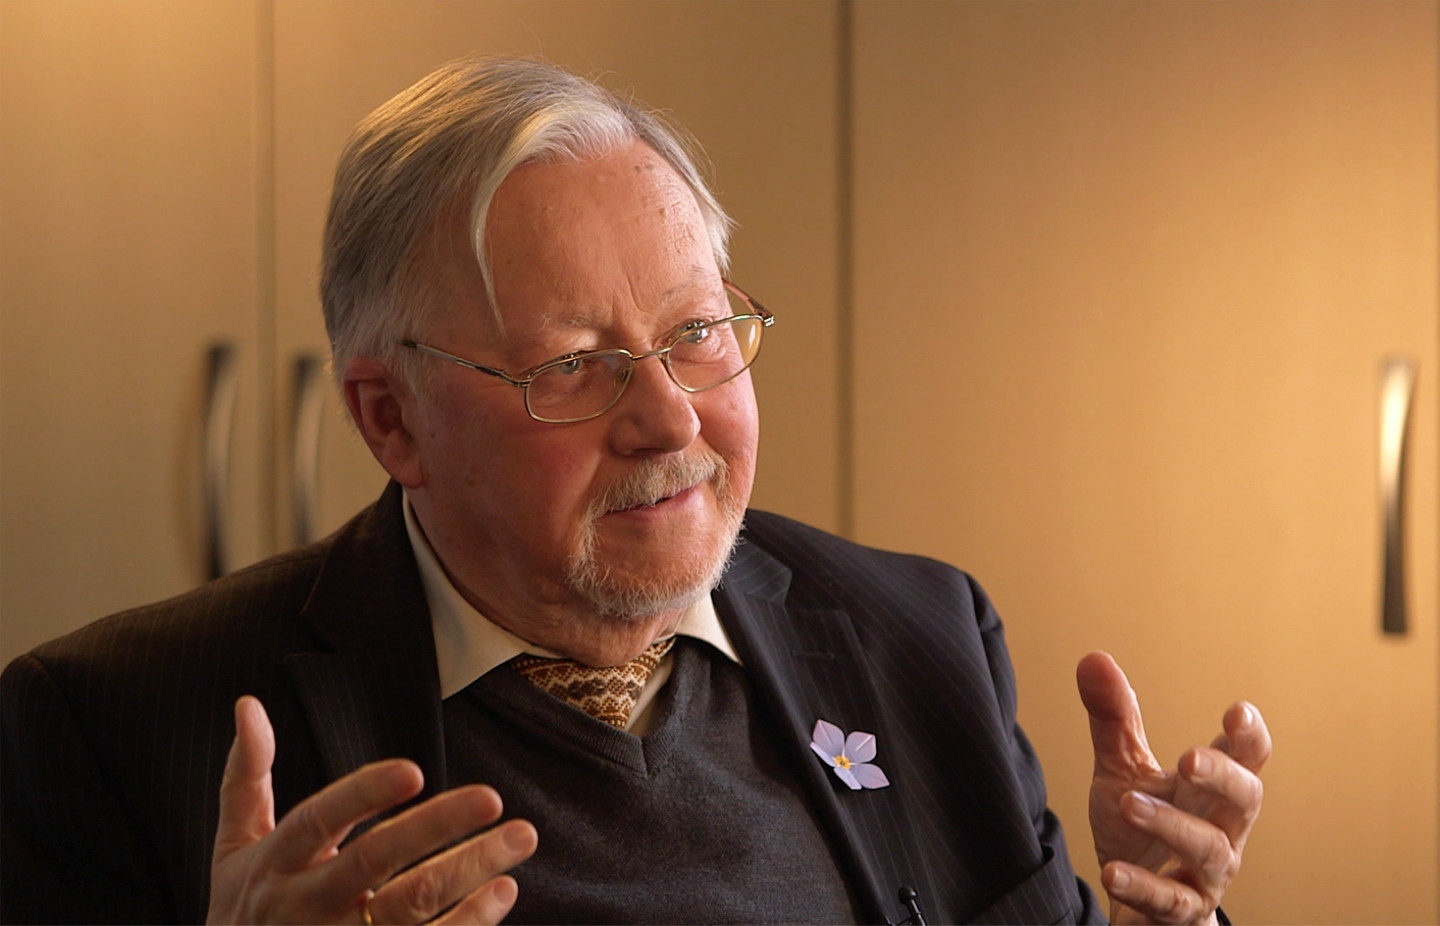 Vytautas Landsbergis, interviewee on John Paul 2: Liberating a Continent, the Fall of Communism.